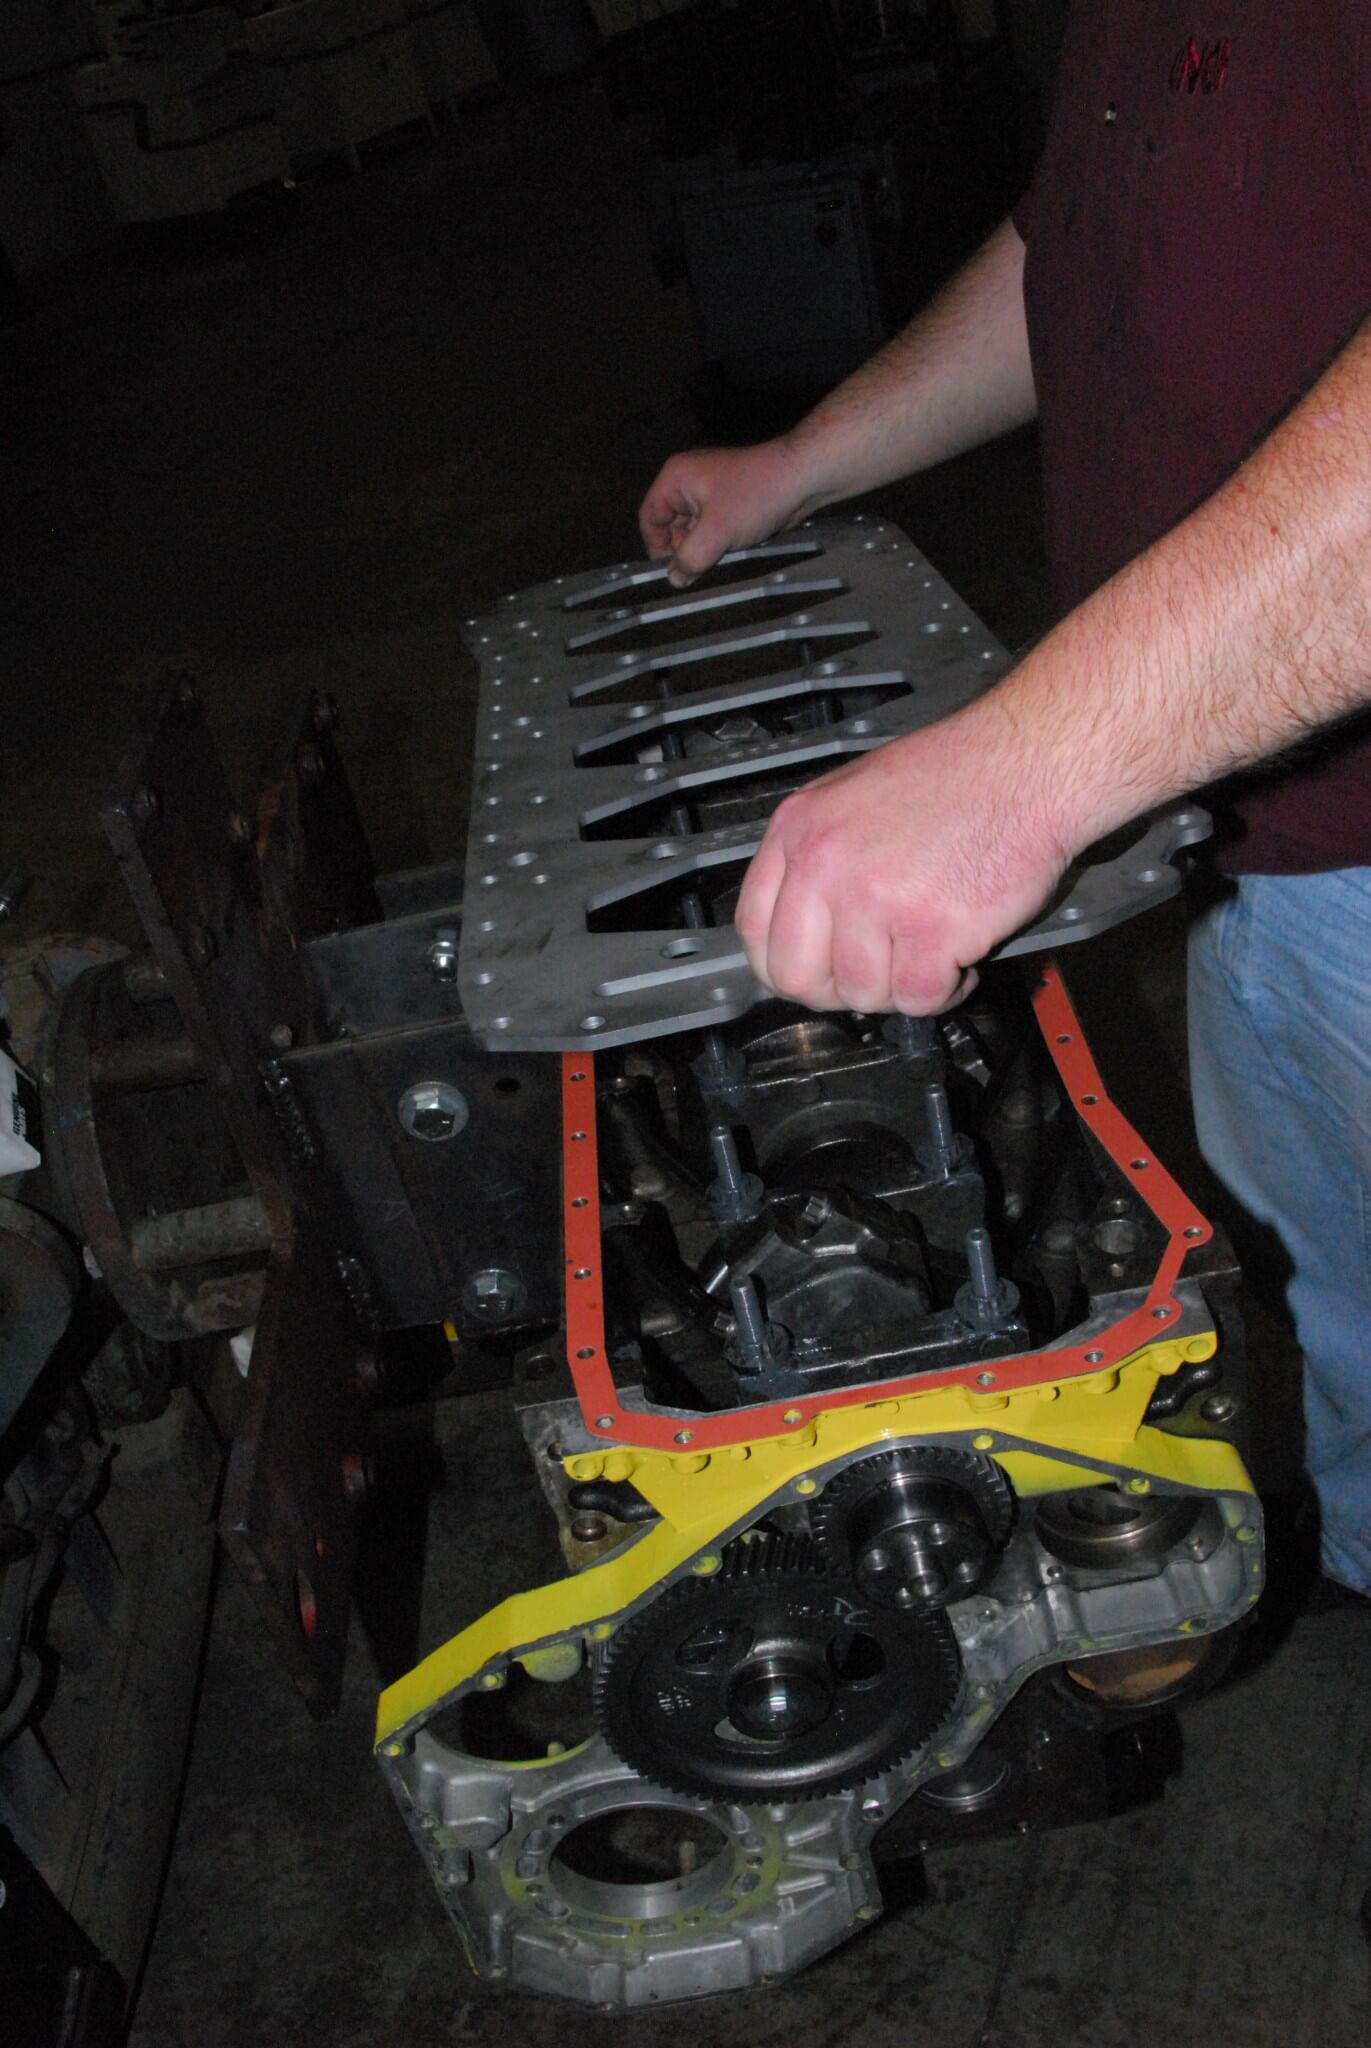 16. For engines that will be torn down regularly, Haisley recommends using the supplied gasket; for street engines that will go for years (or decades) before being disassembled, use RTV.